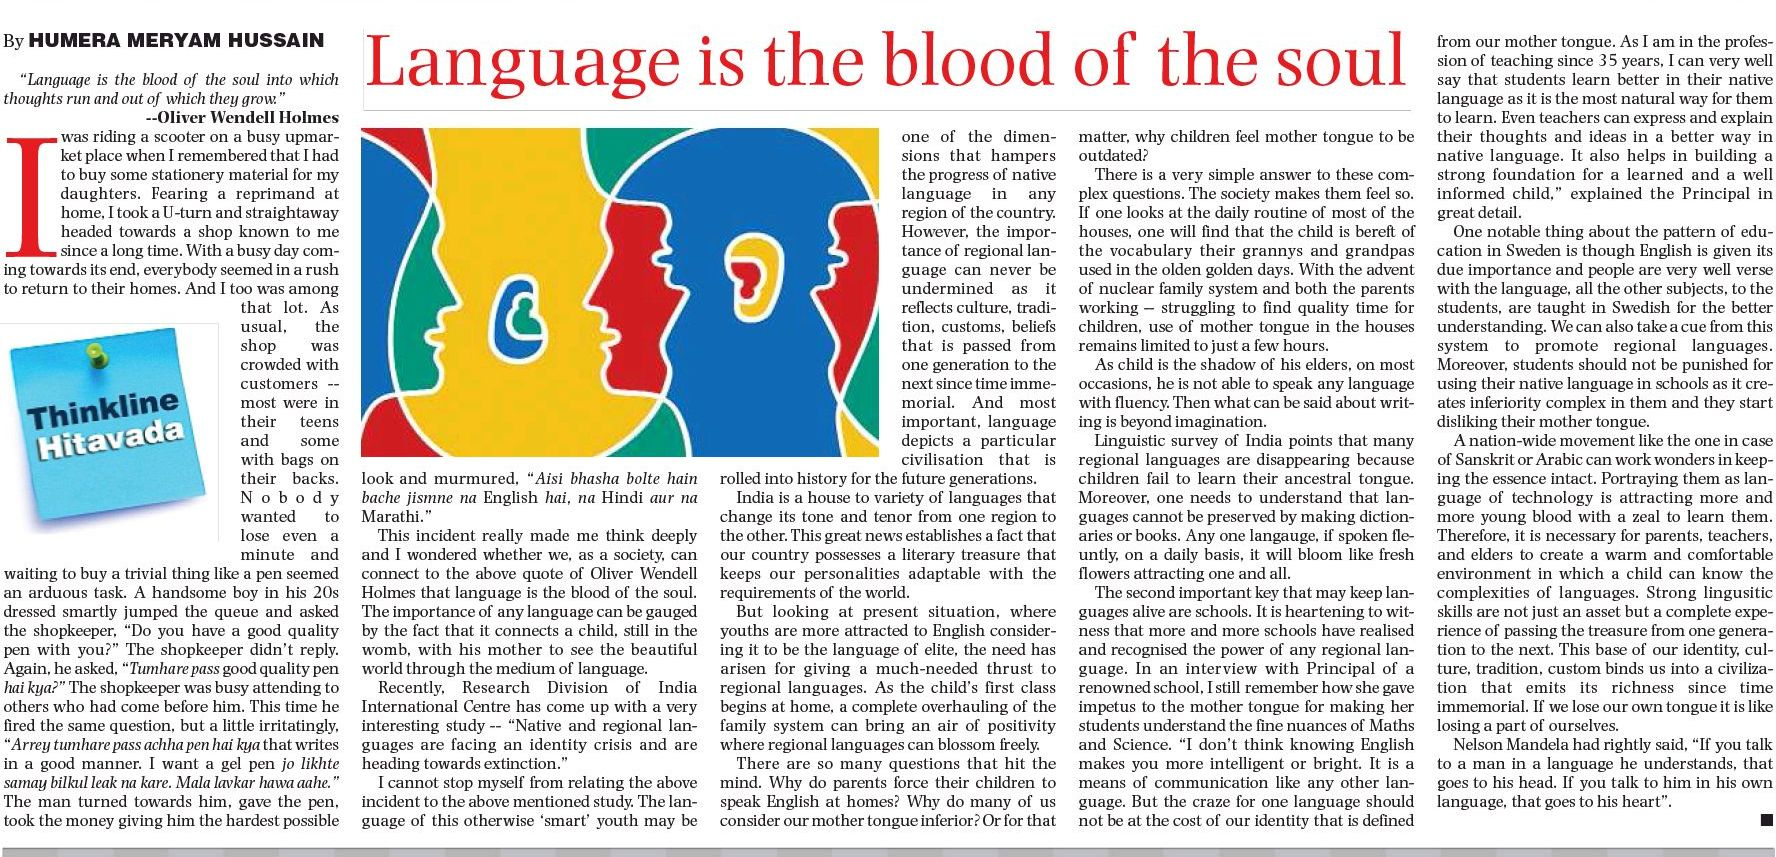 hindi our mother tongue If mother tongue should be promoted, then hindi is not our mother tongue the university has a majority of non-hindi students, said harmandeep, adding that the multilingual and multicultural identity of the country was in danger.